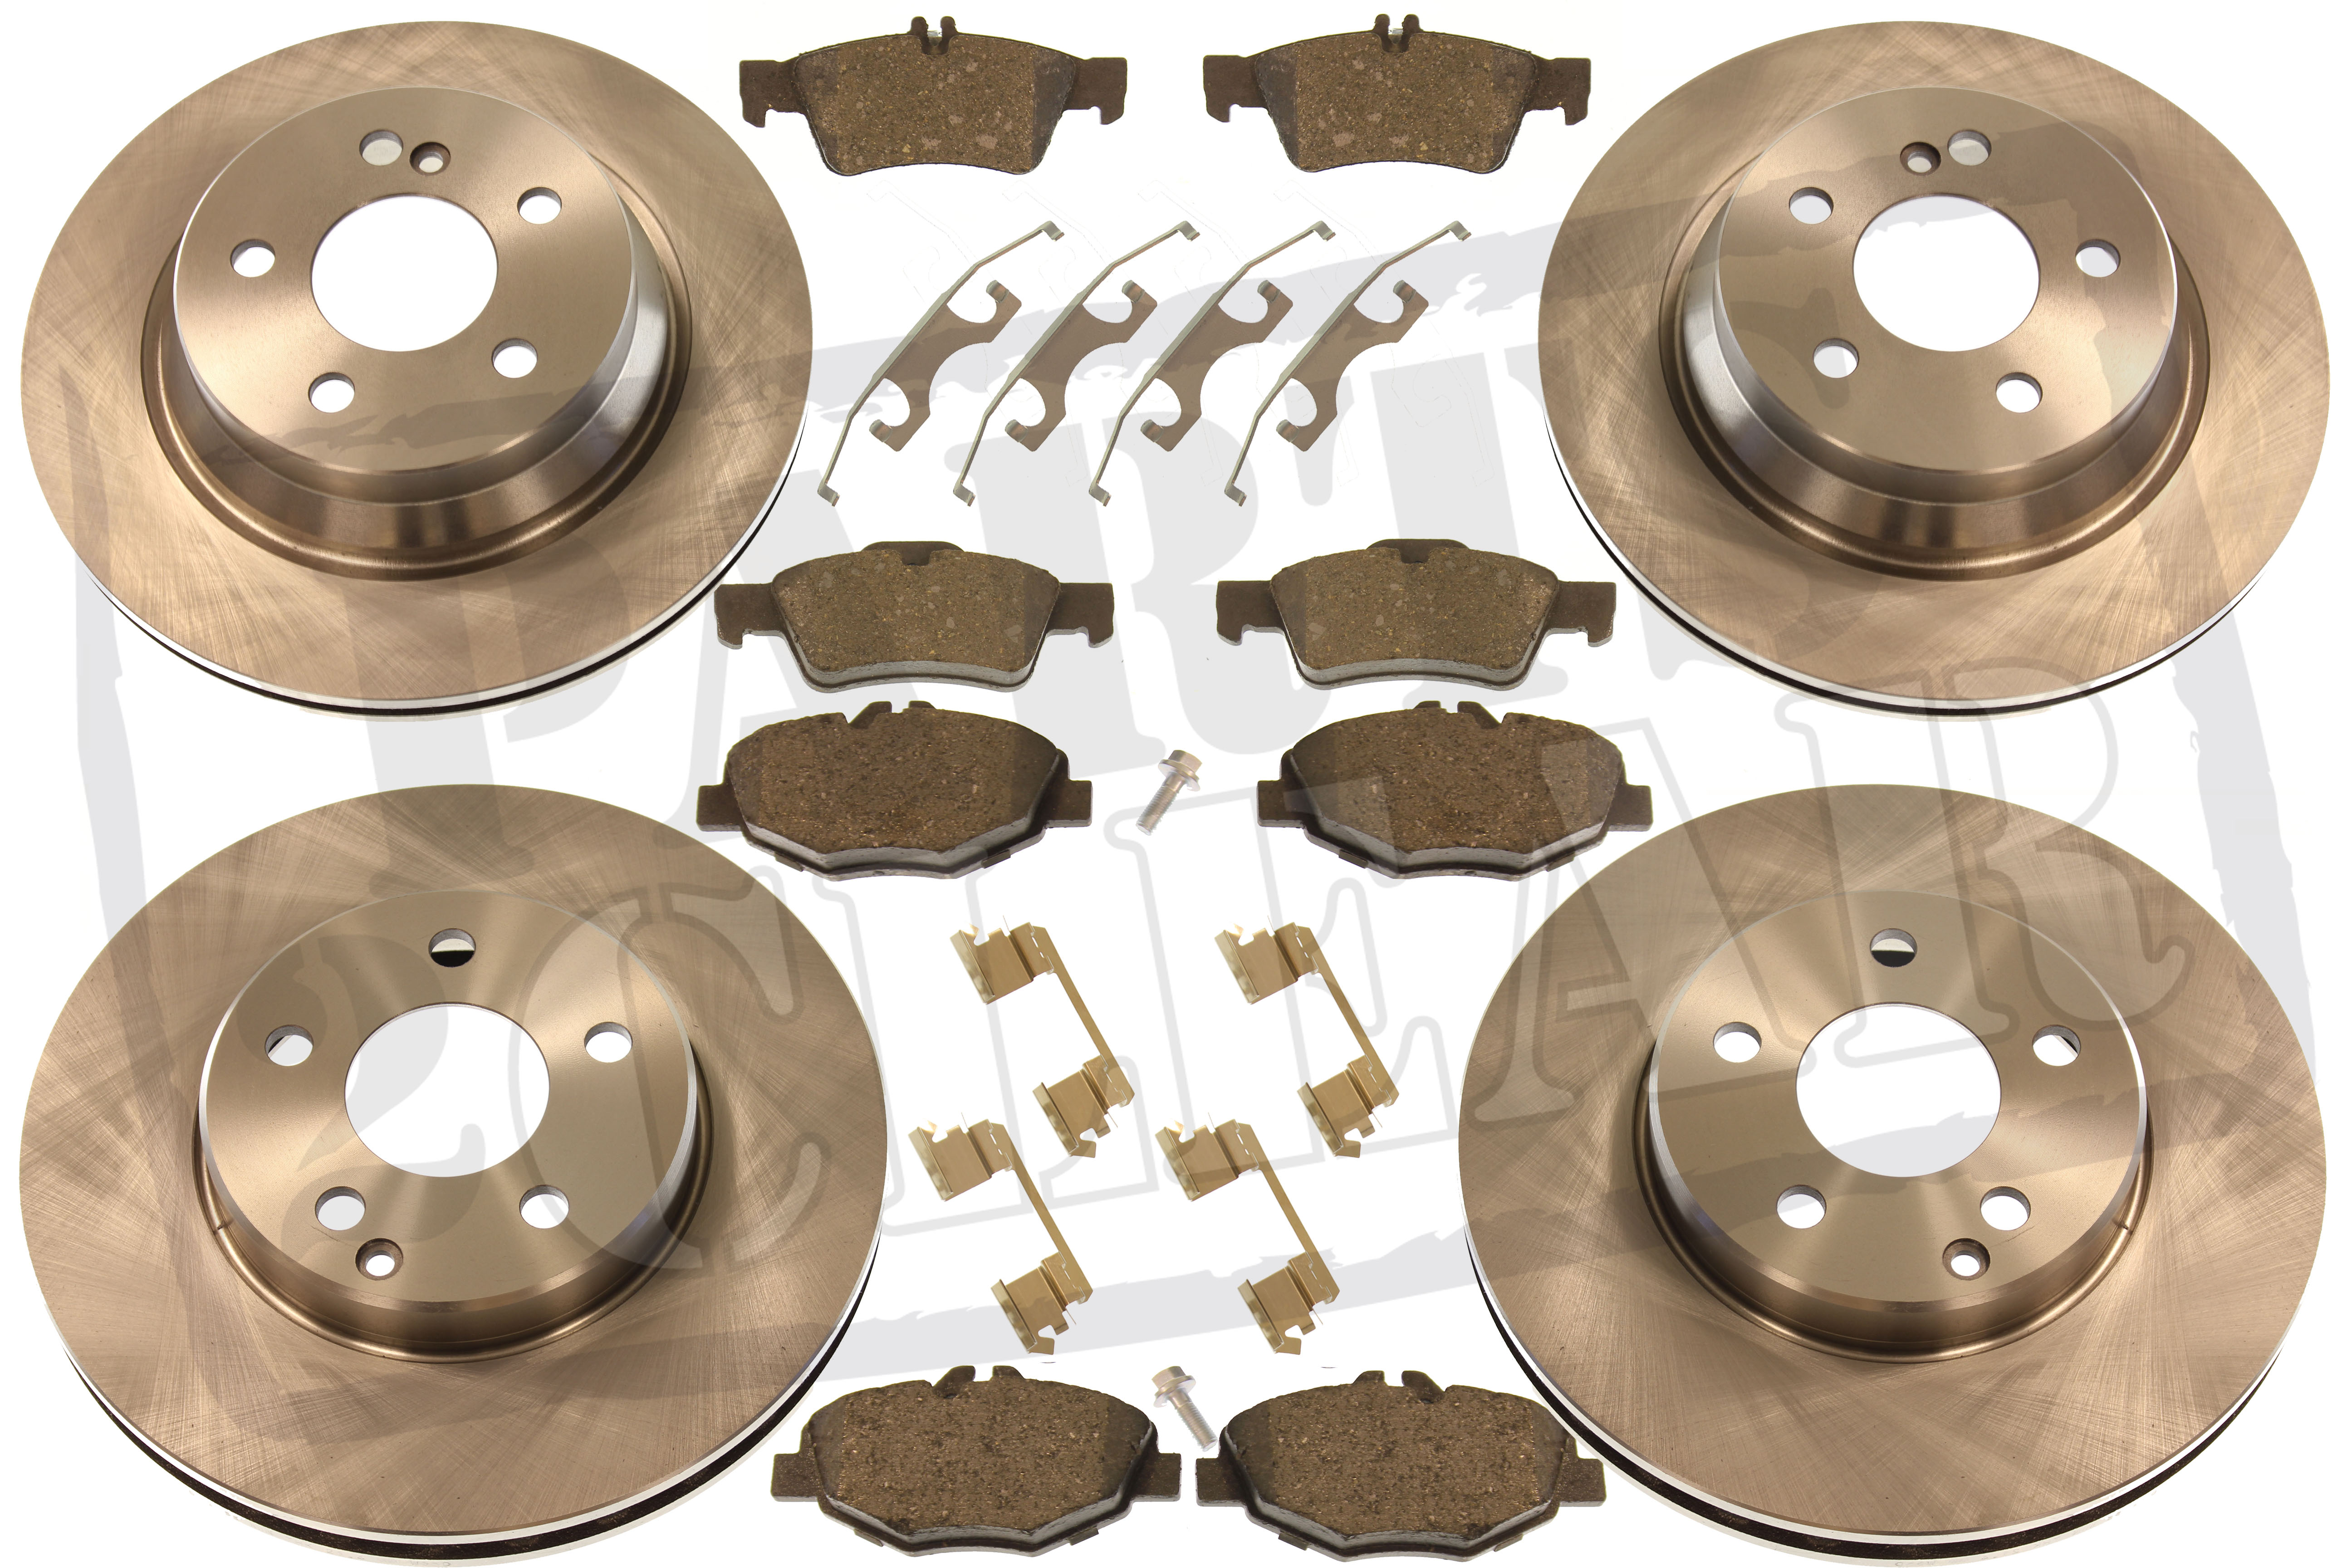 2003-2010 FOR MERCEDES W211 E200 E220 CDI FRONT BRAKE DISCS AND PADS SET